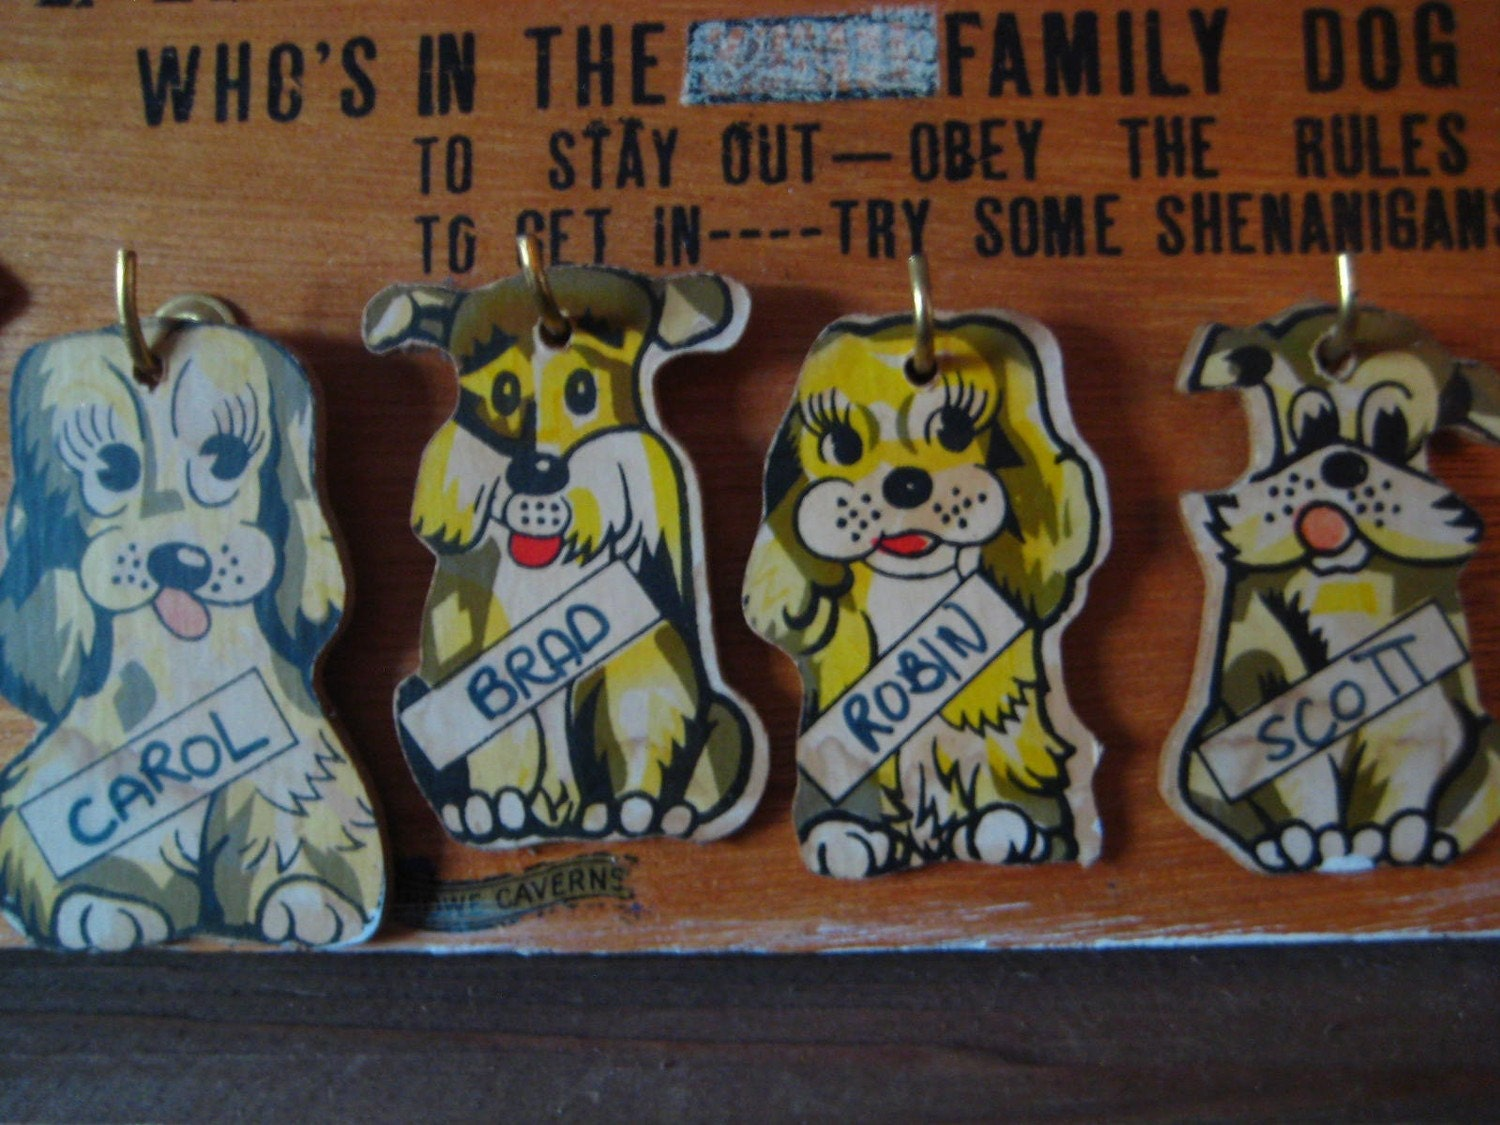 Vintage Family Dog House Wall Plaque 1950 Wall Art